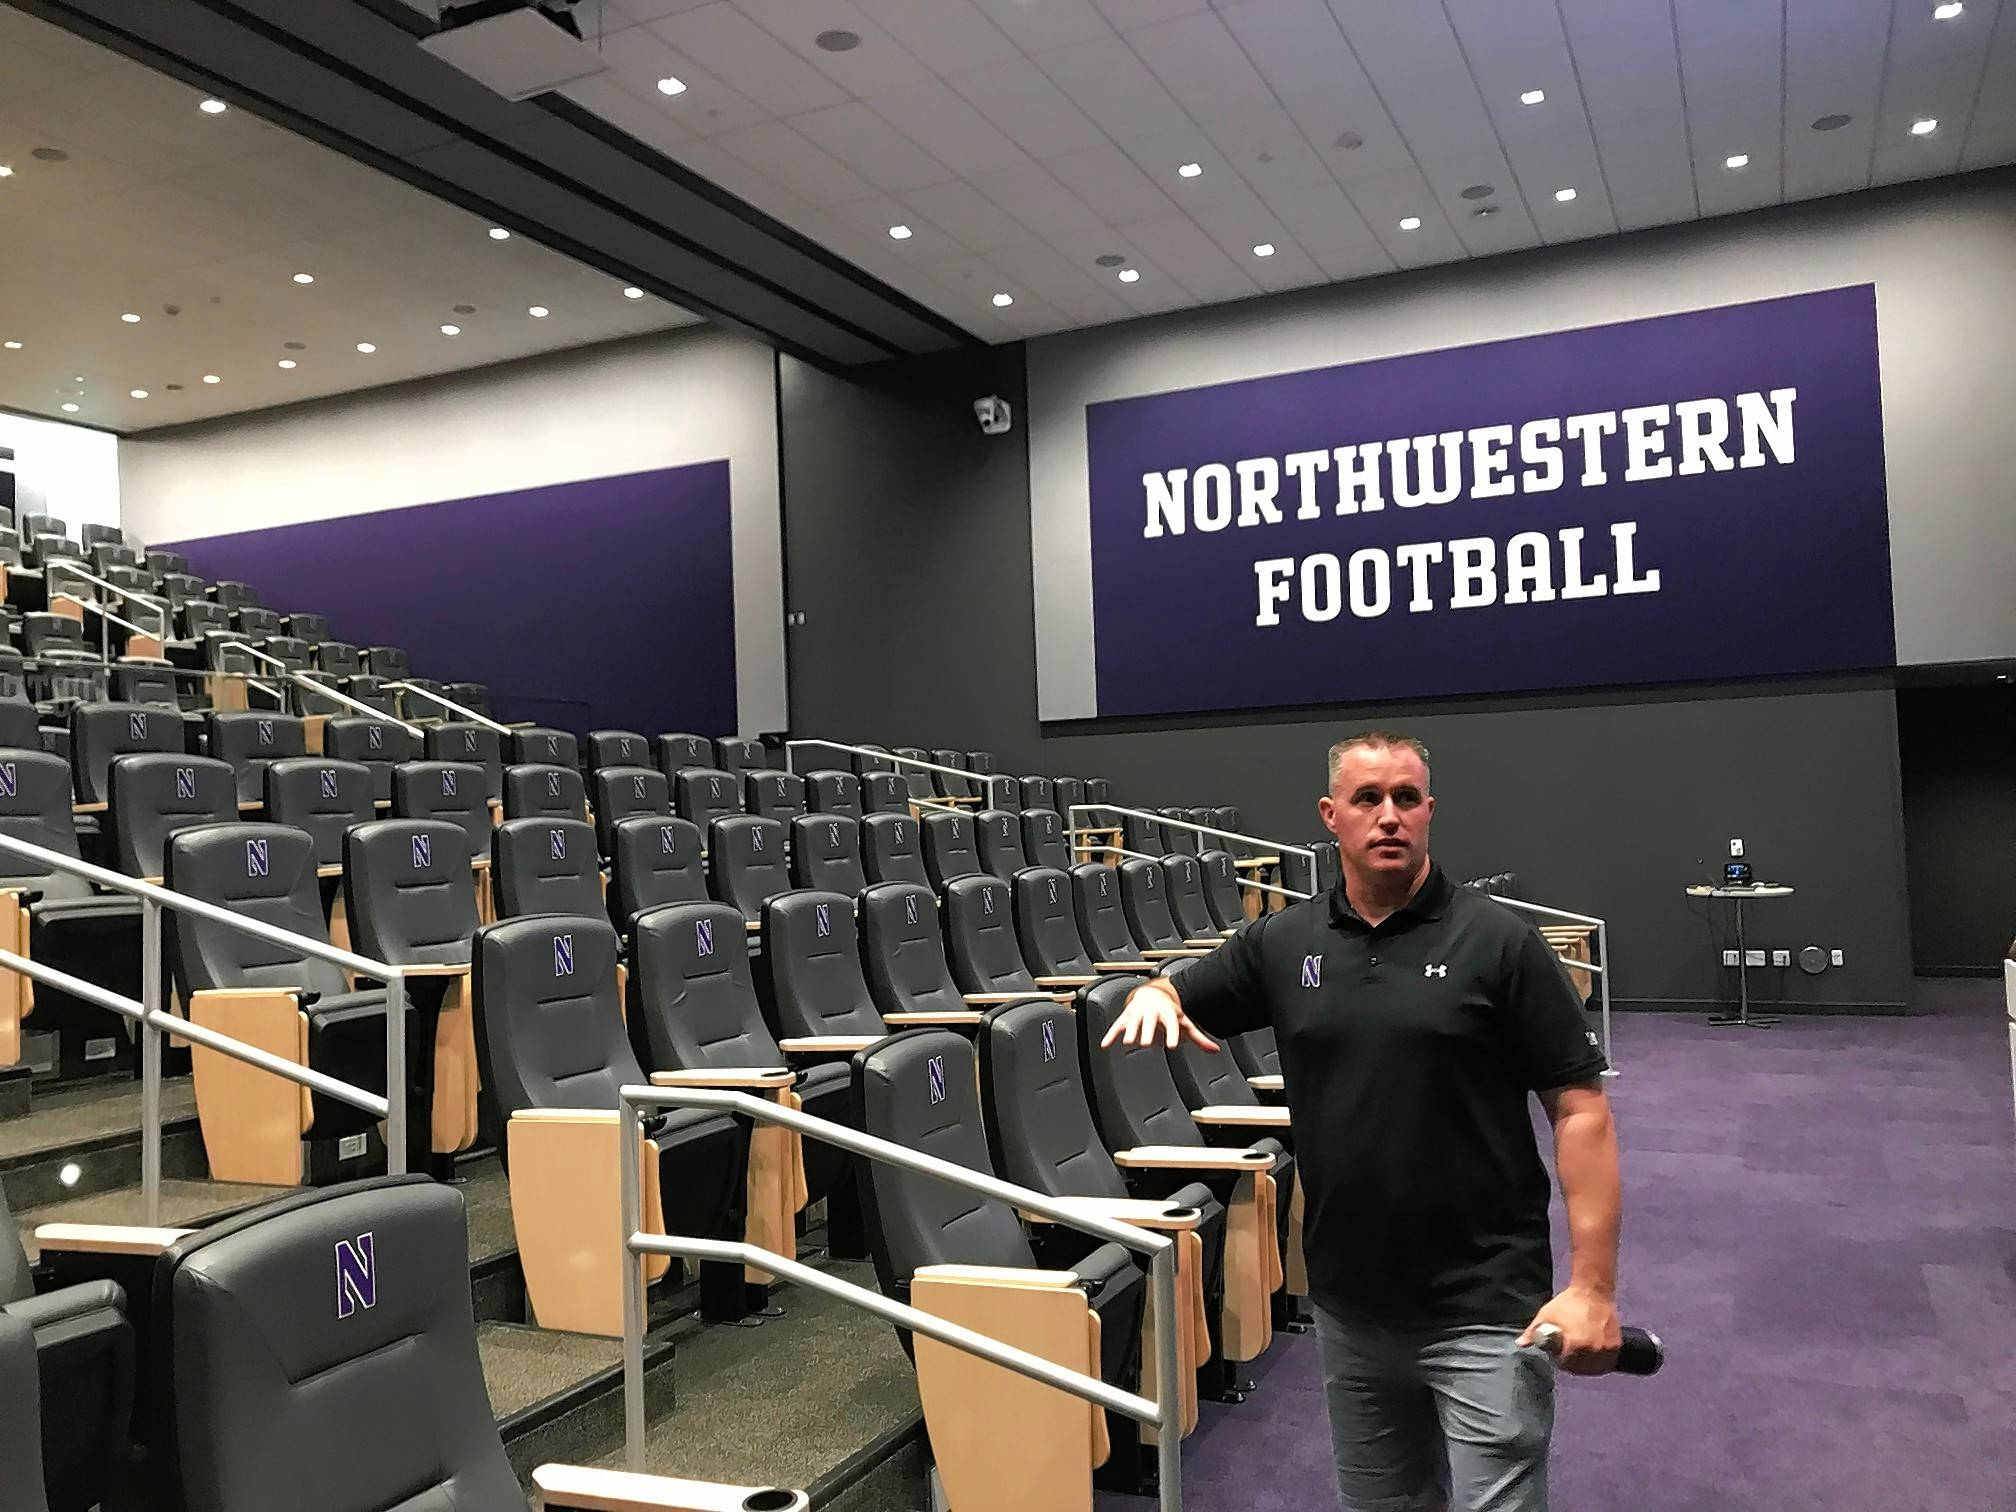 New era begins at NU as massive athletic complex opens